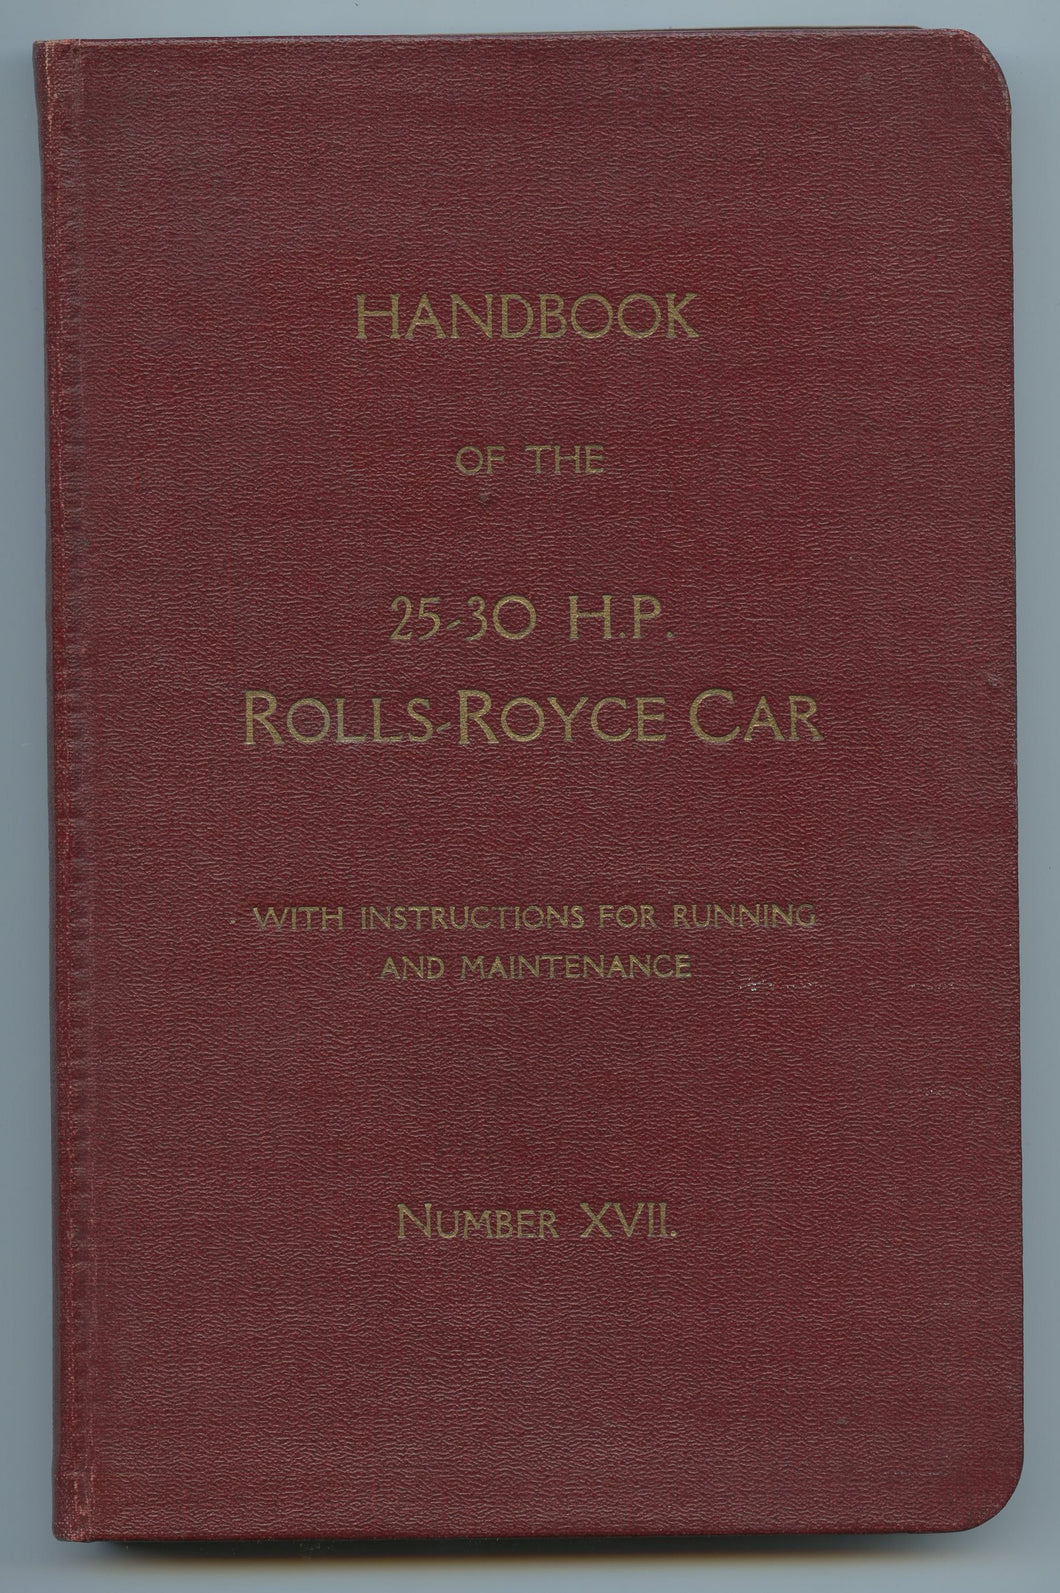 Handbook of the 25-30 H.P. Rolls-Royce Car with instructions for running and maintenance. Number XVII